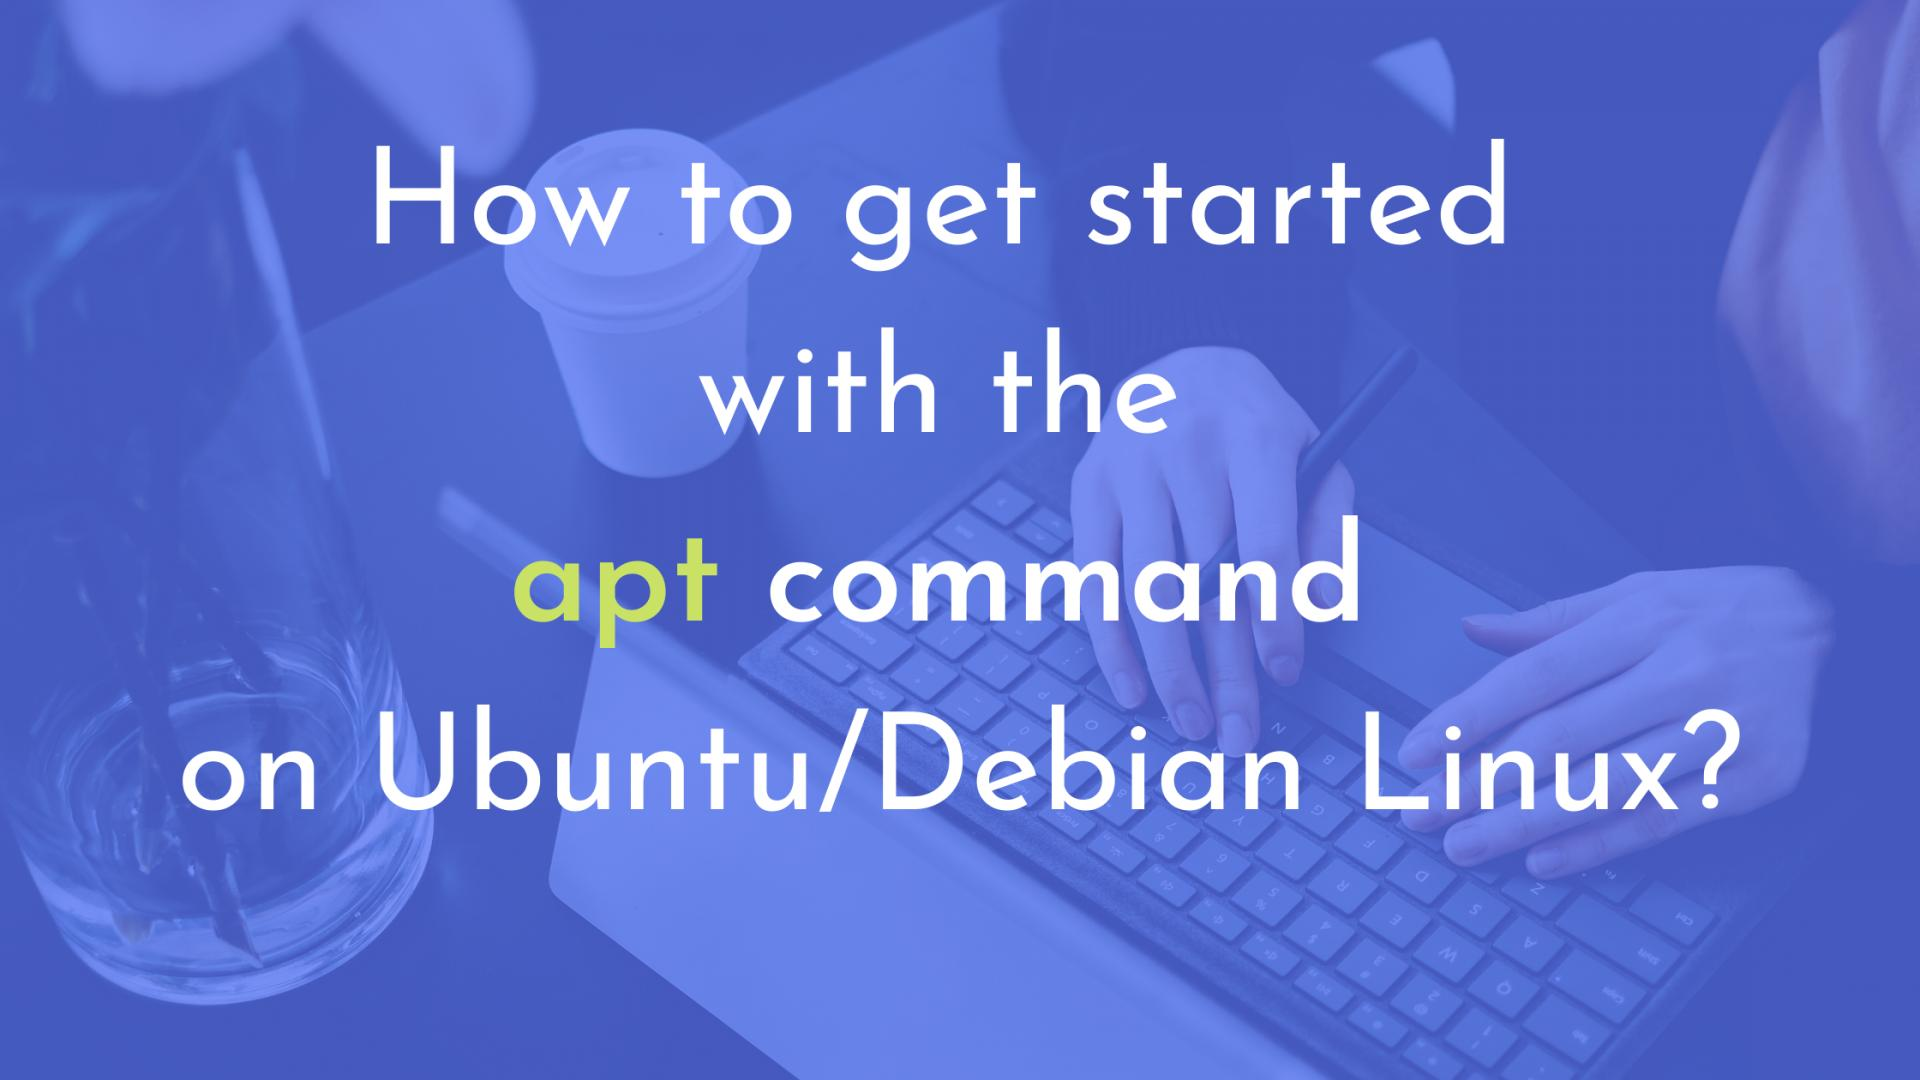 How to get started with the apt command on Ubuntu/Debian Linux?